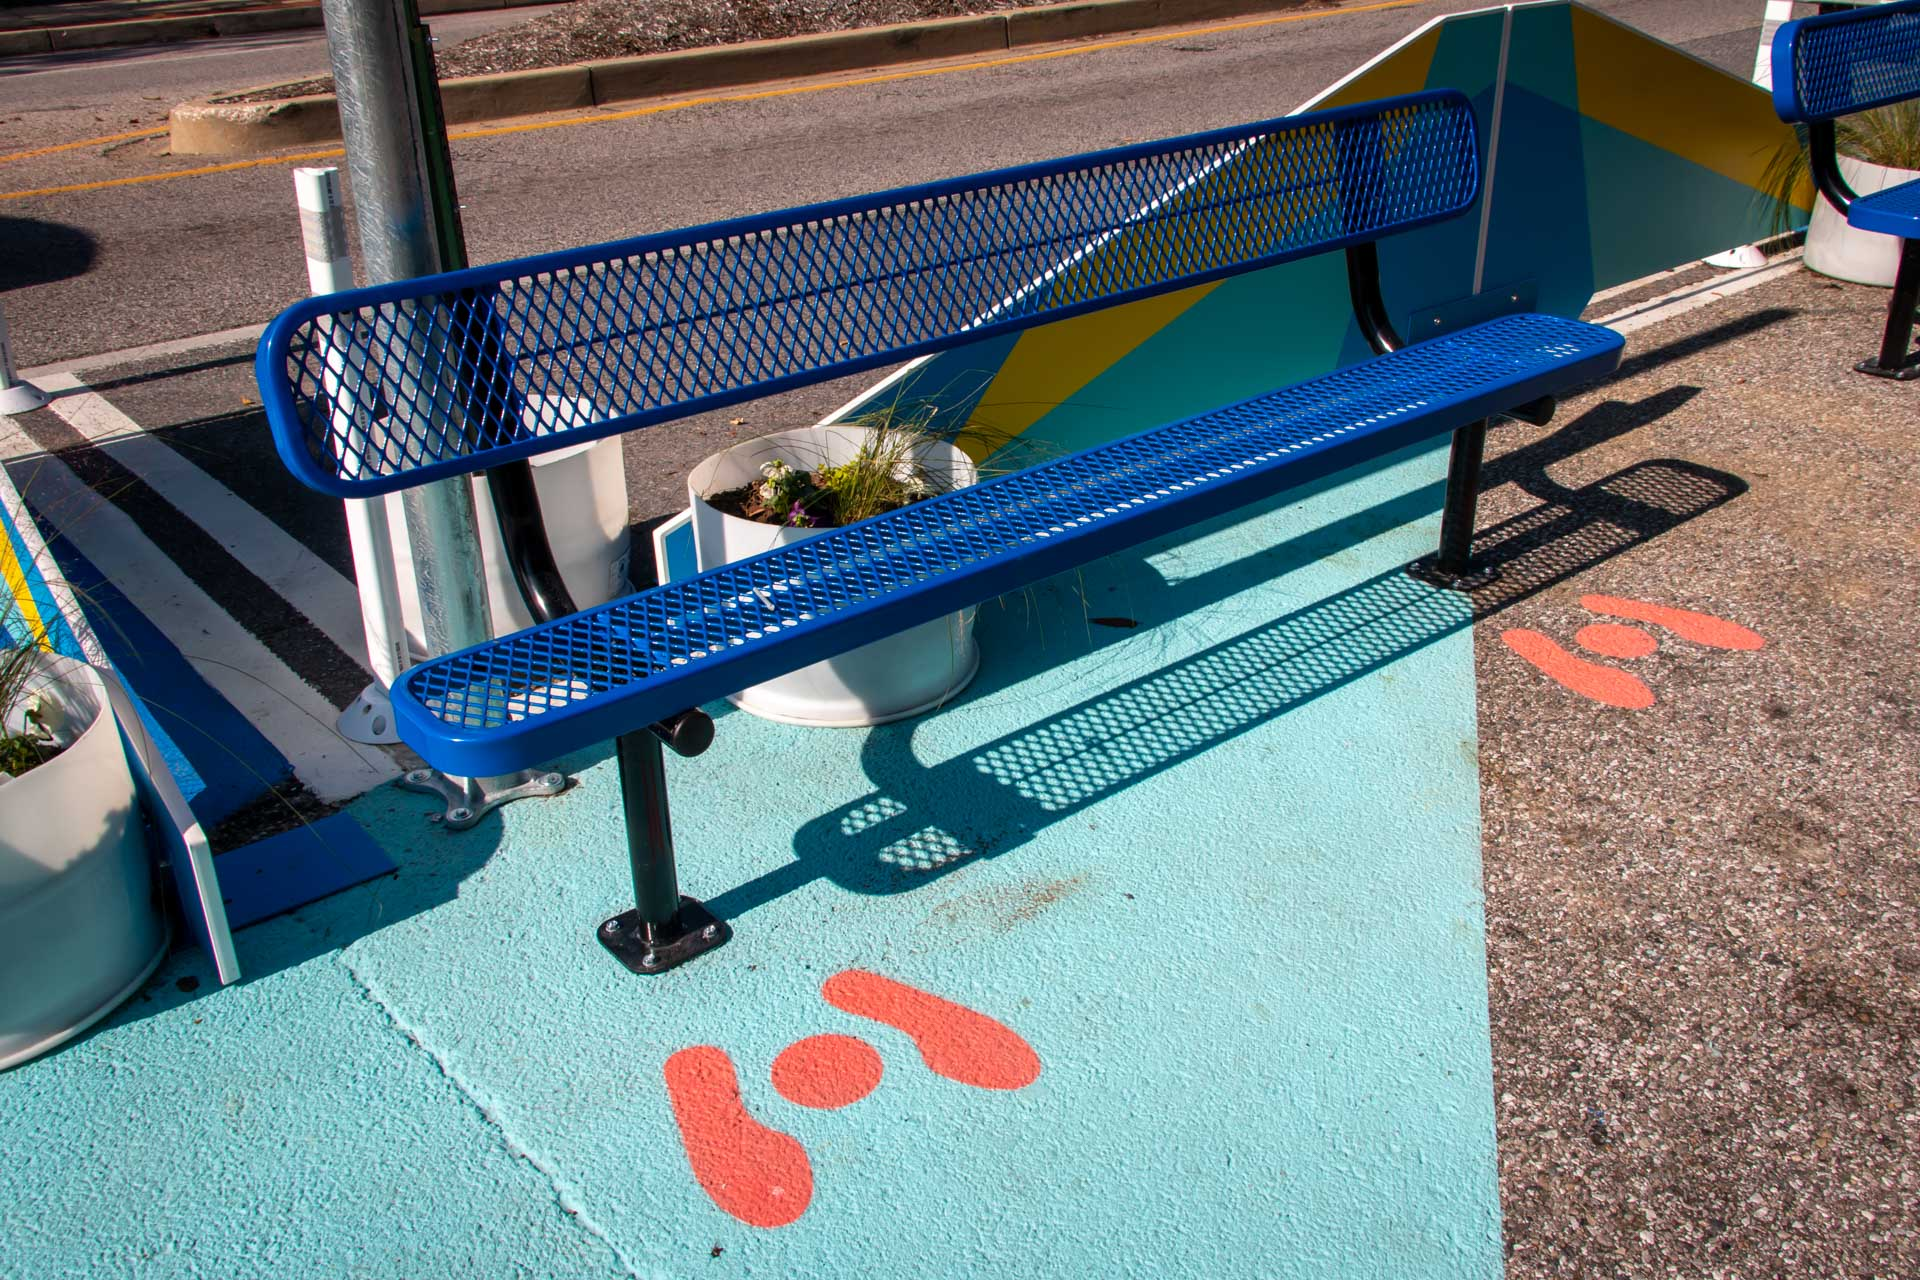 Design for Distancing Curbside Commons physical distancing bench